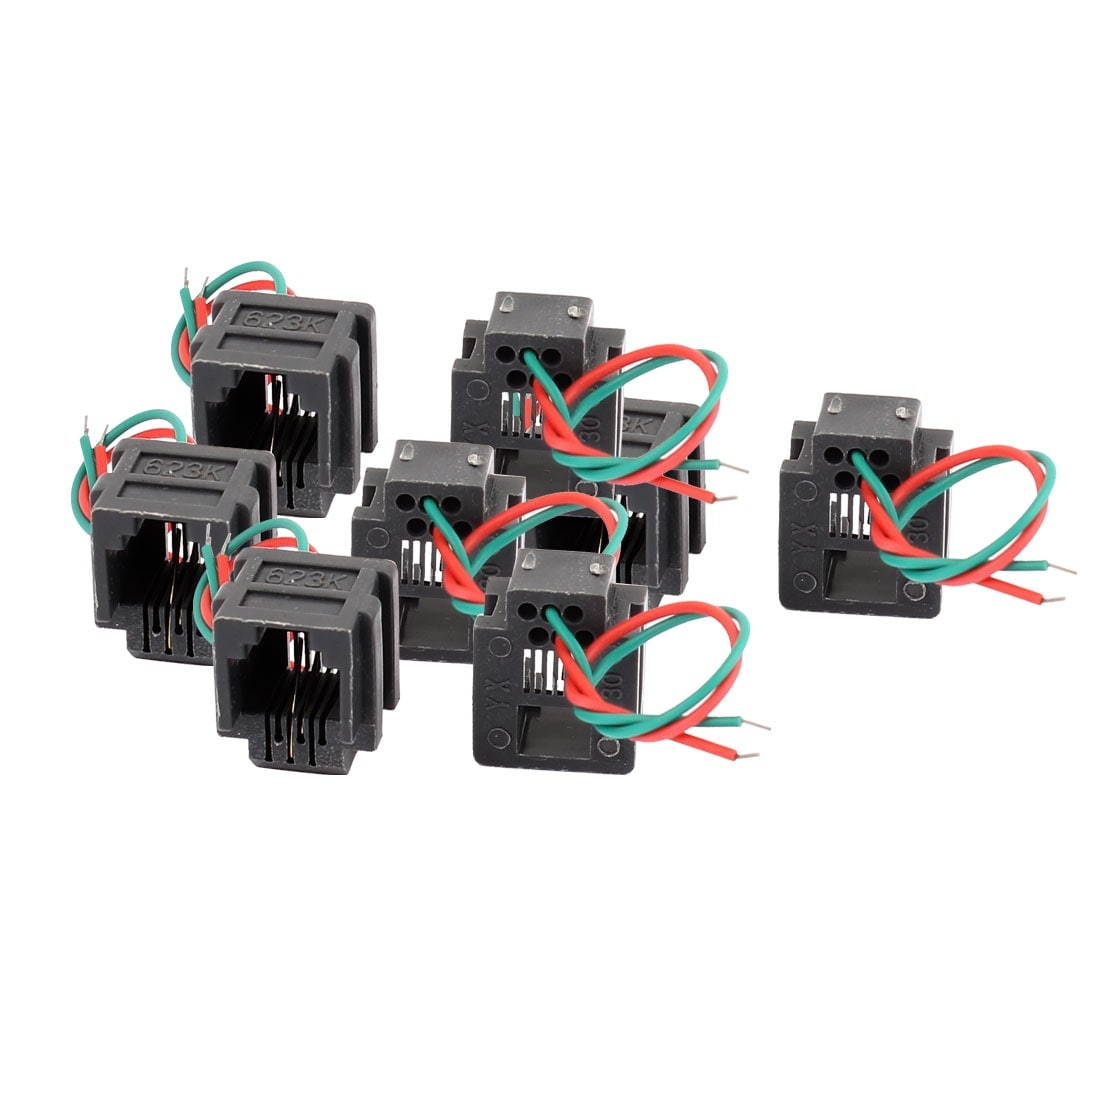 hight resolution of shop 8 pcs rj11 6p2c 6 position pcb gray network modular female connector w 2 wires free shipping on orders over 45 overstock 18355860